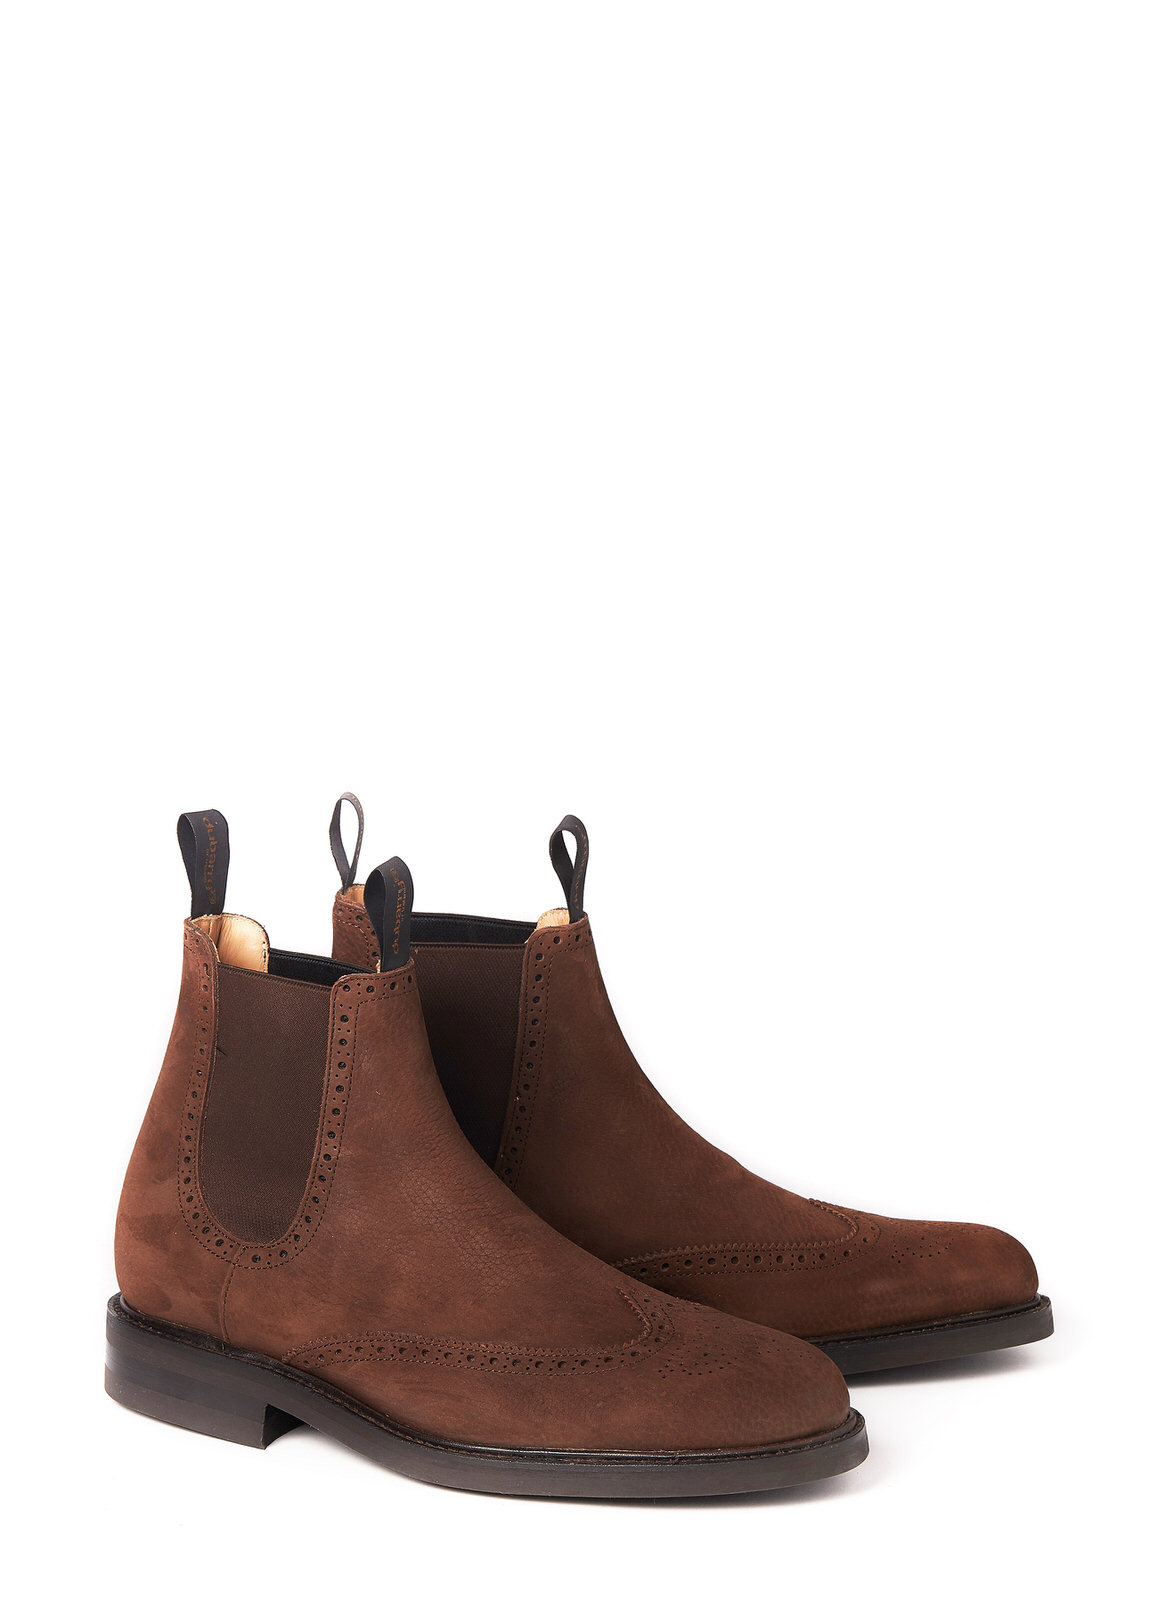 Fermanagh Goodyear Chelsea boot - Walnut